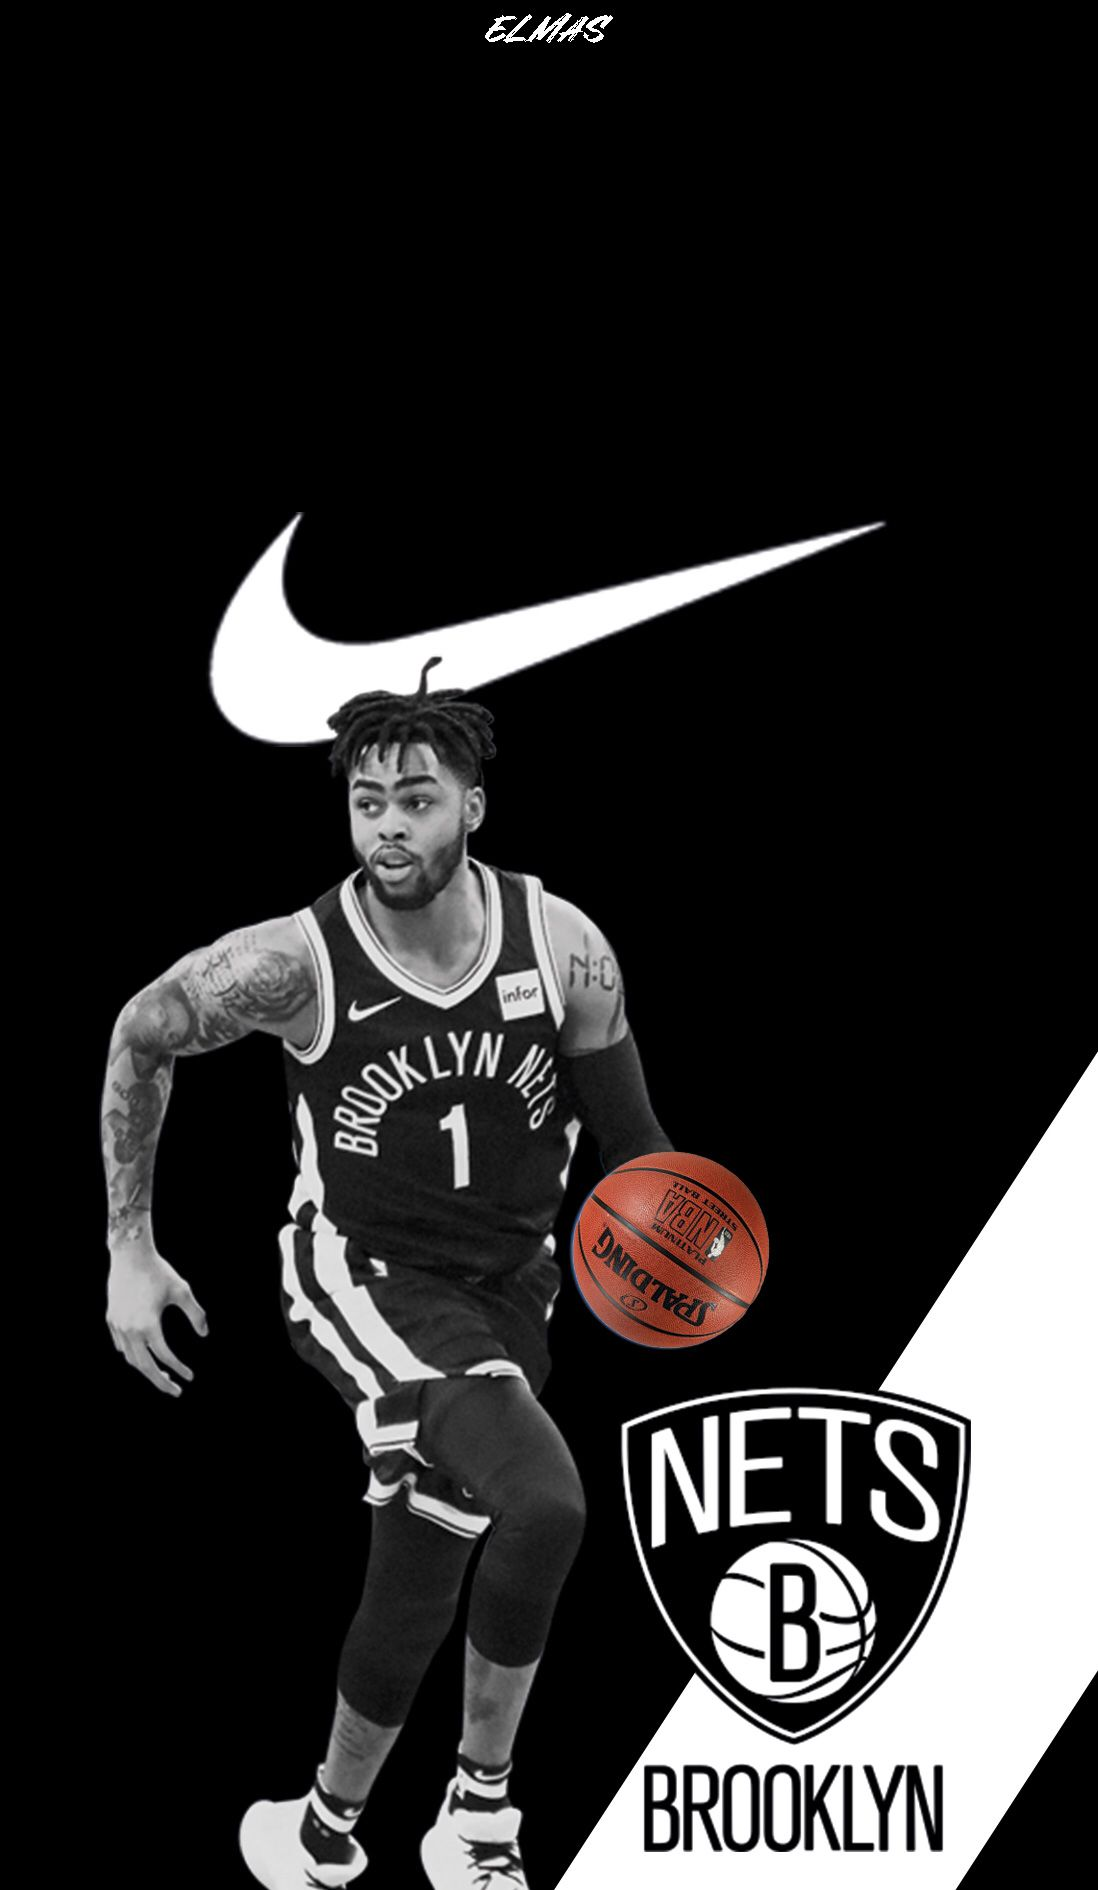 Brooklyn Nets Brooklyn Nets Basketball Basketball Net Brooklyn Nets